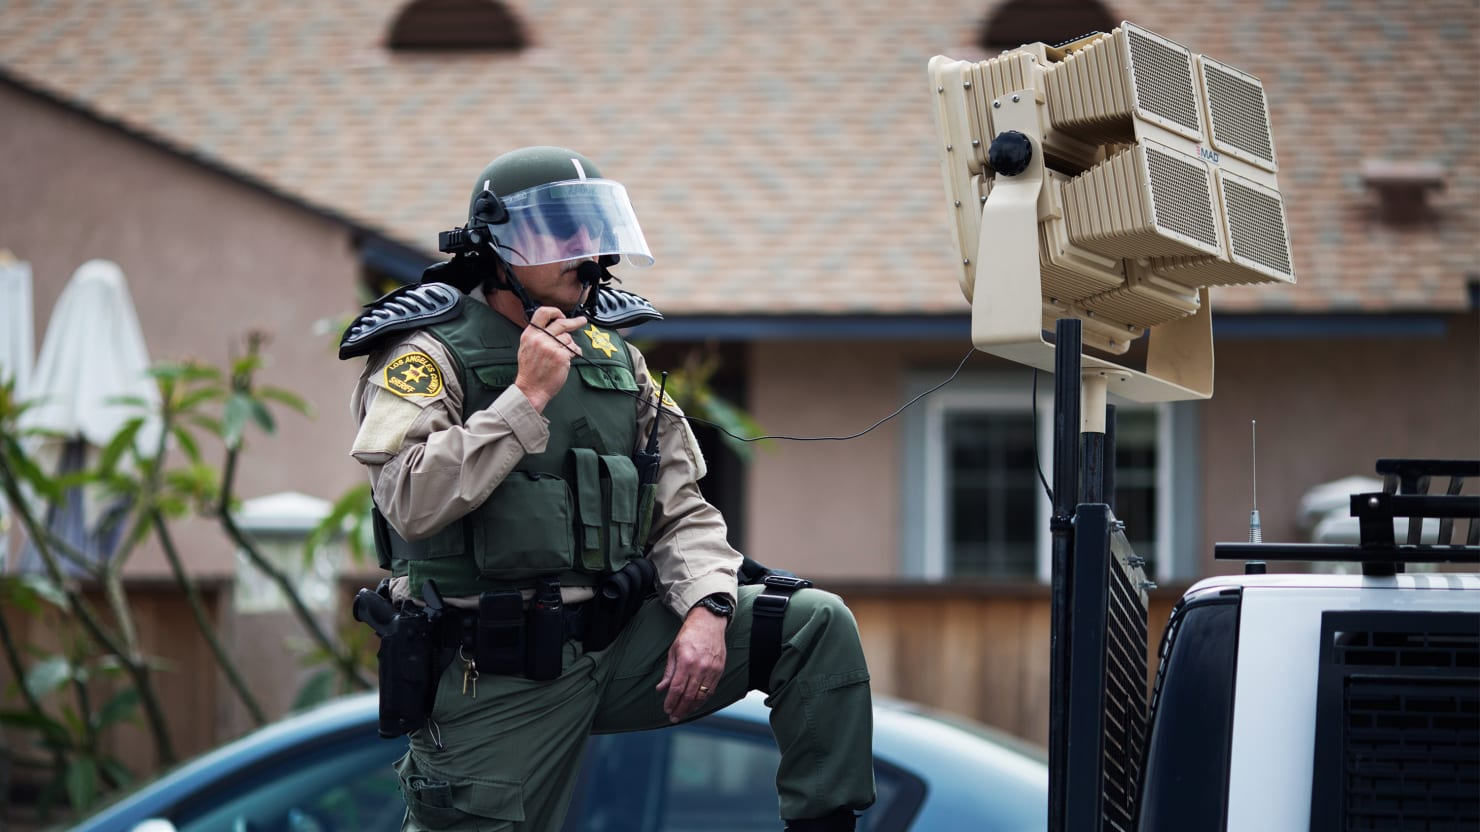 How the LRAD Went From a Pirate Deterrent to a Police Crowd Control Tool